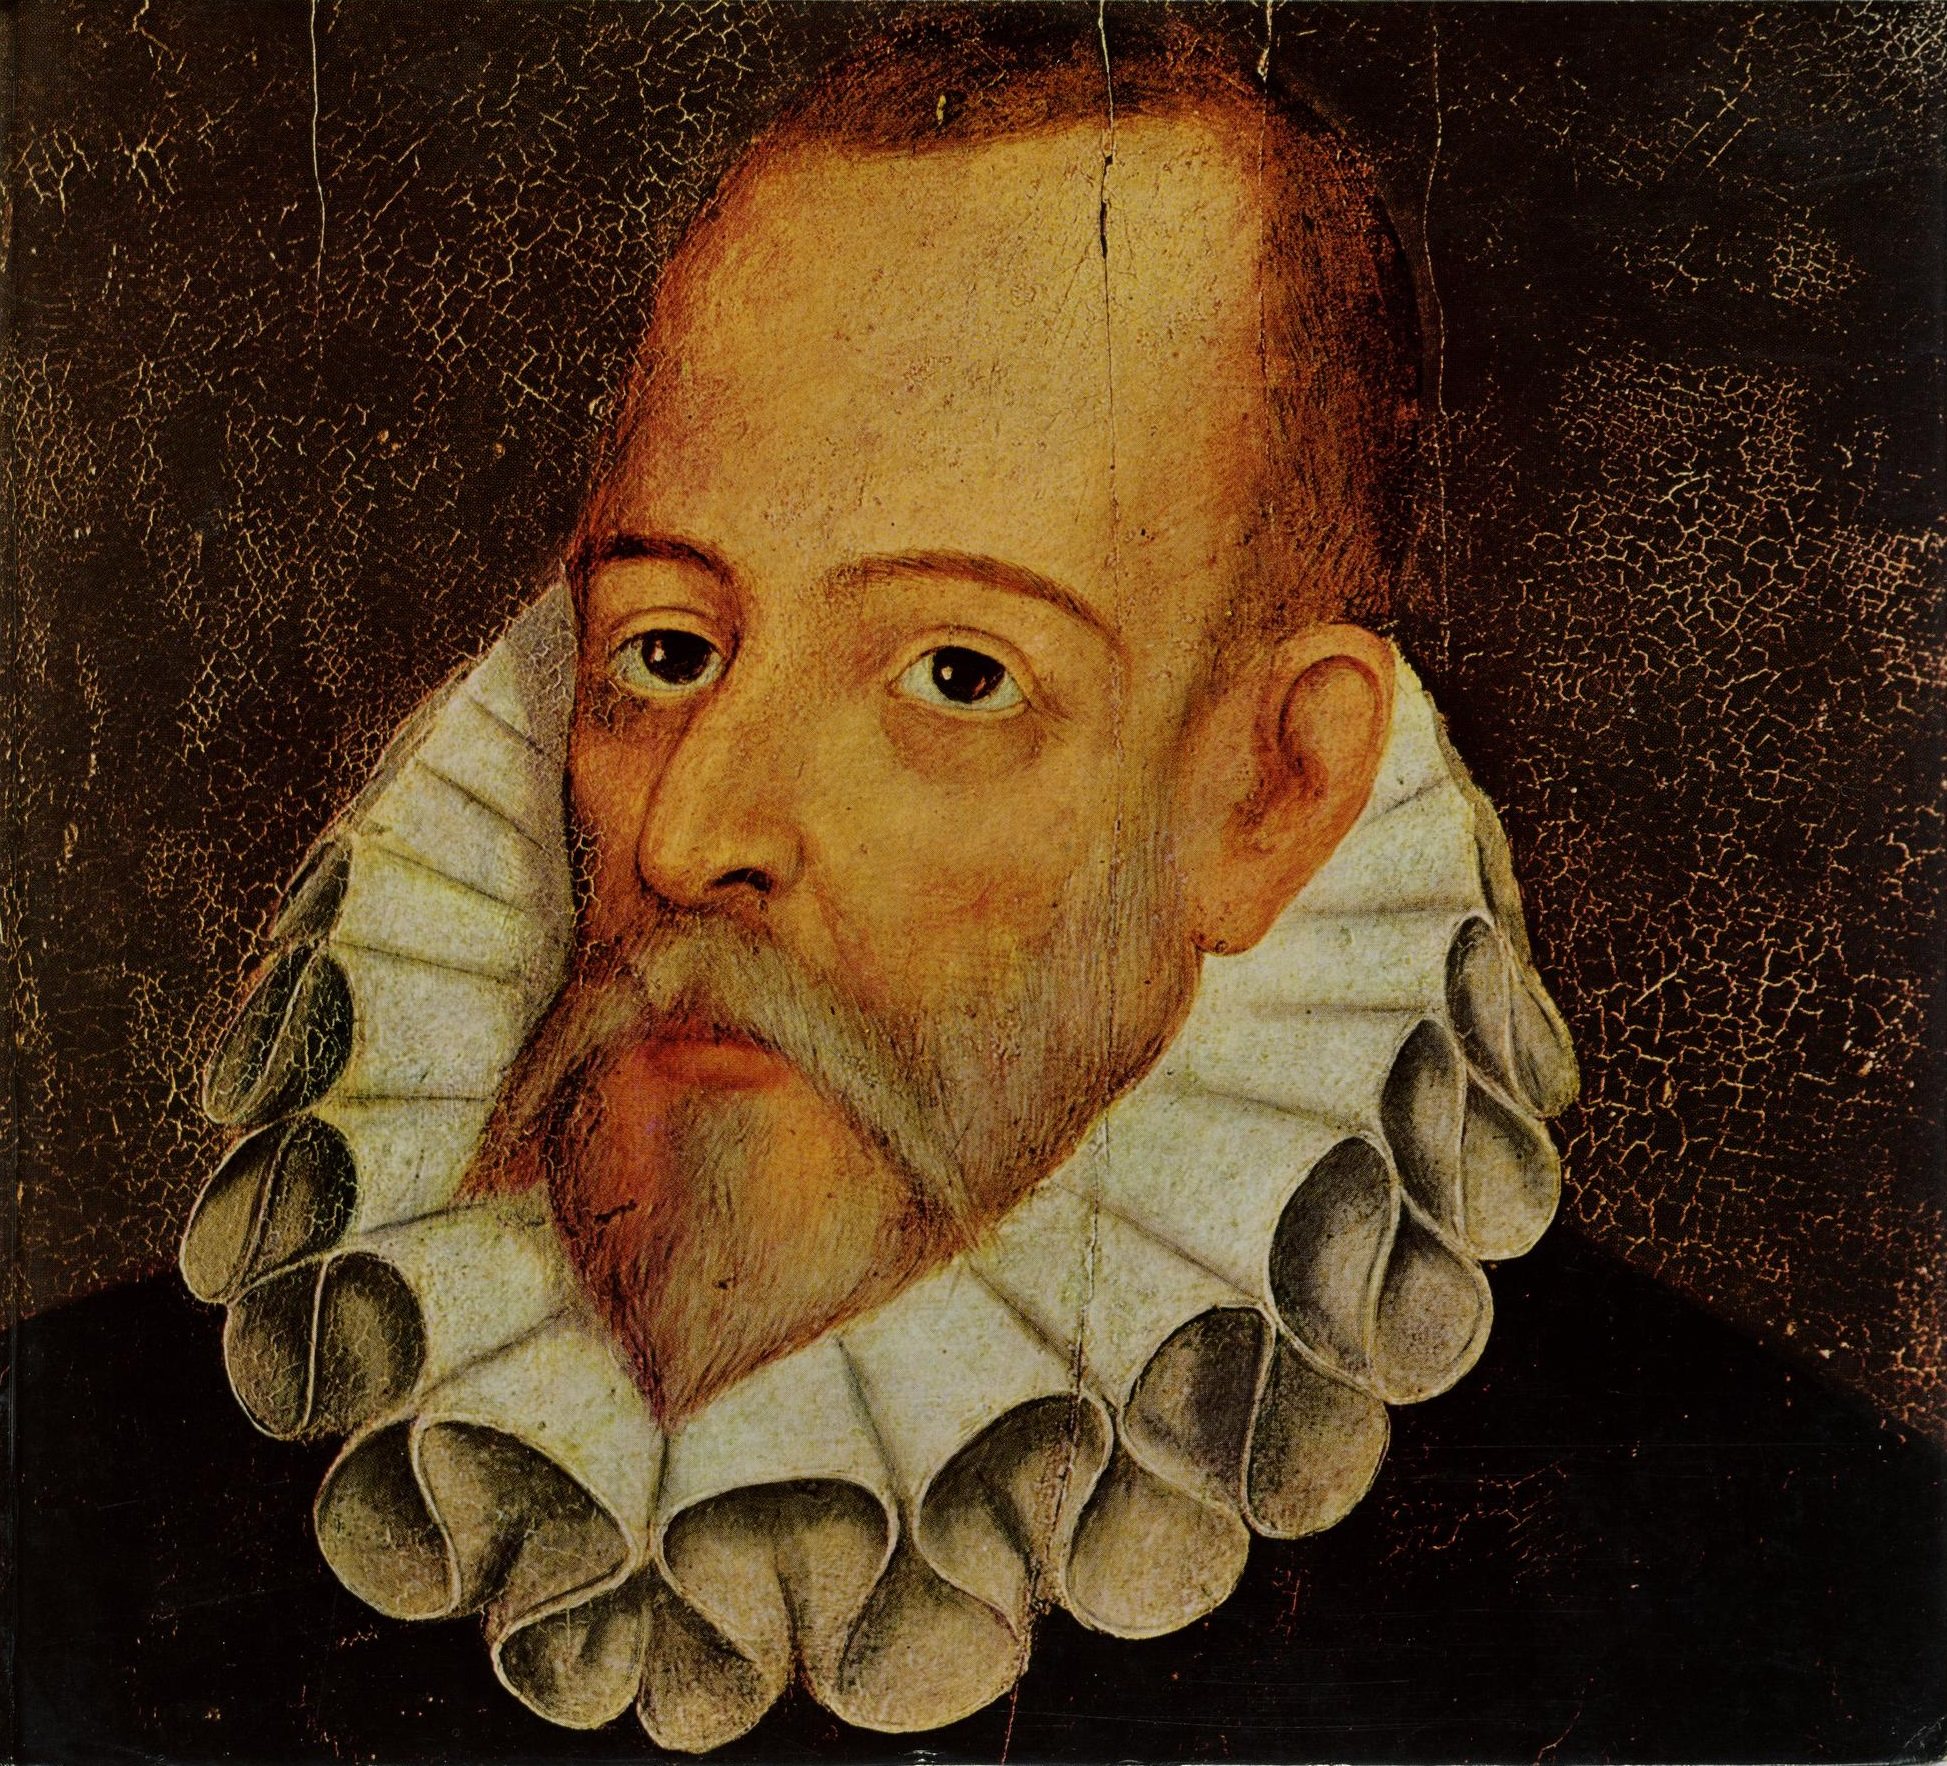 a description of don quixote by miguel de cervantes saavedra Cervantes definition, miguel de [mi-gel spanish miˈgɛl dɛ/ (show ipa), (miguel de cervantes saavedra) most famous for don quixote.